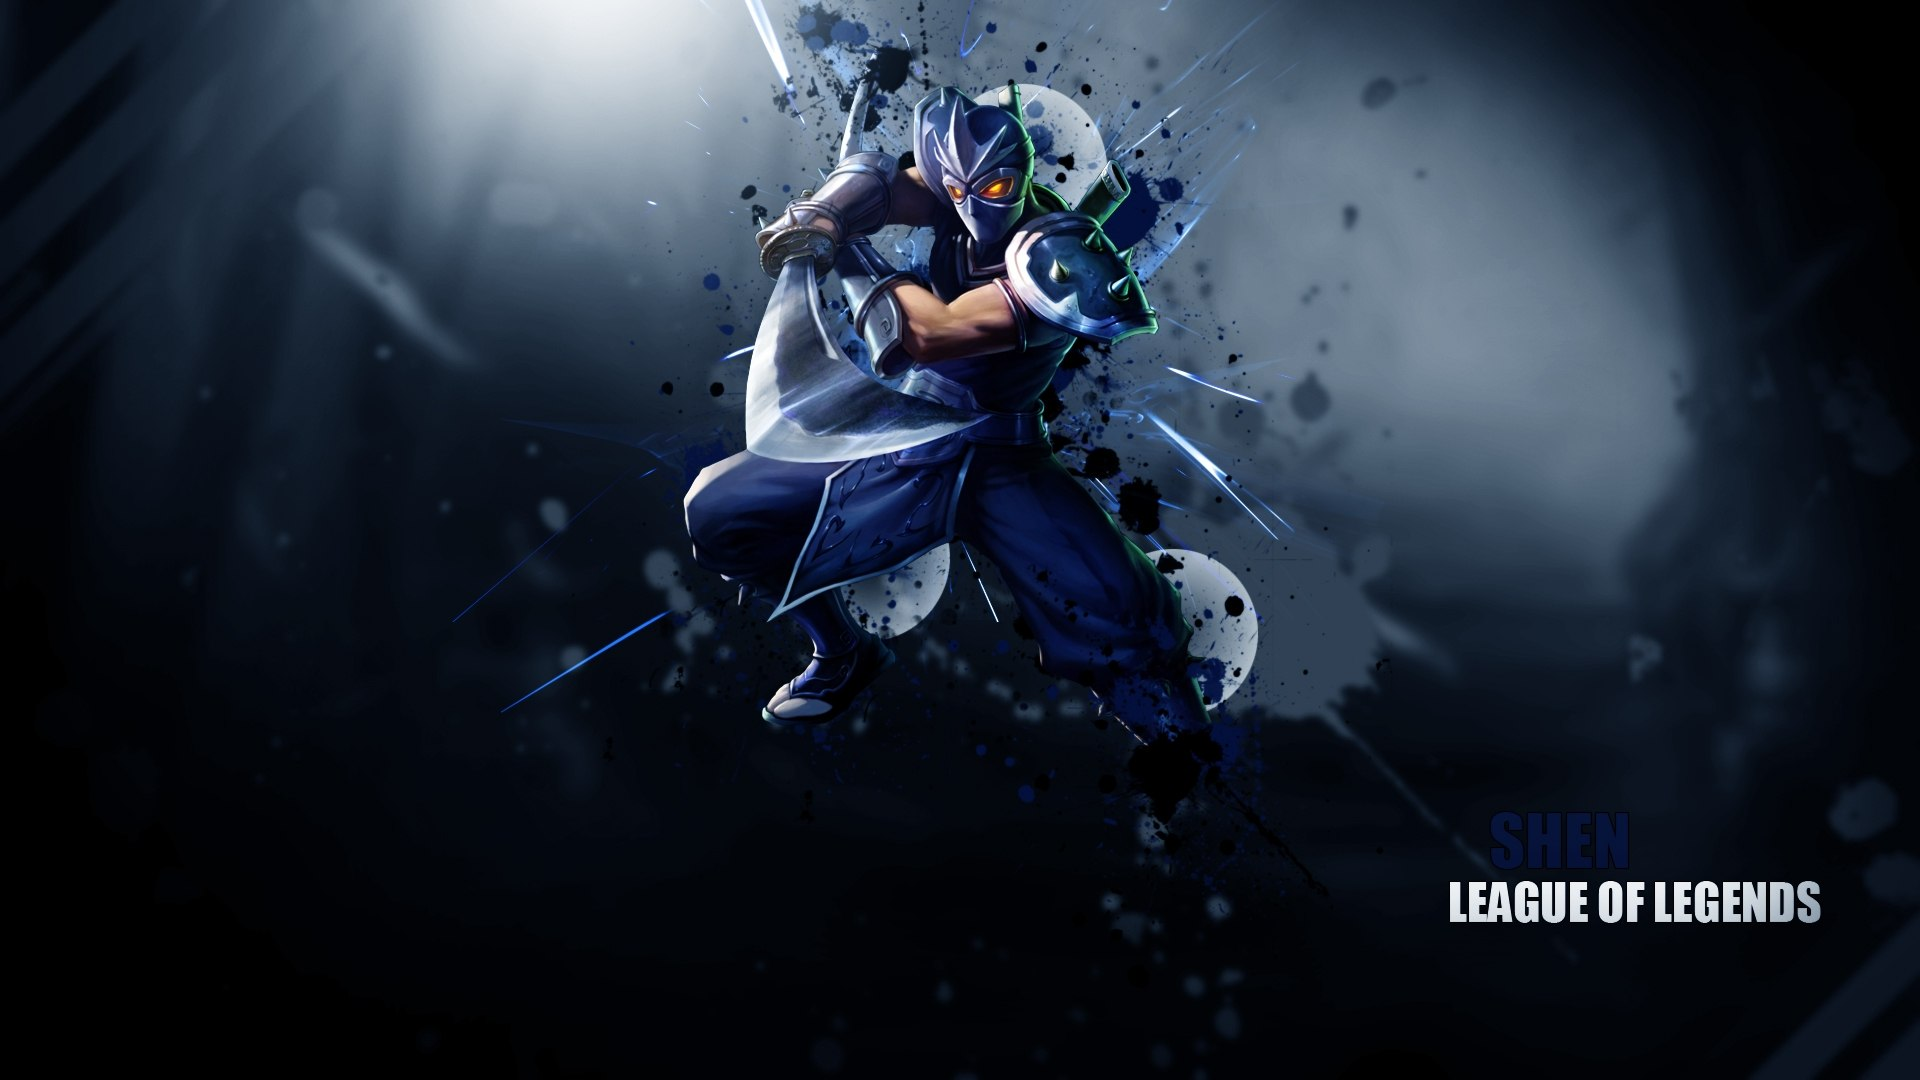 League of Legends wallpaper 132